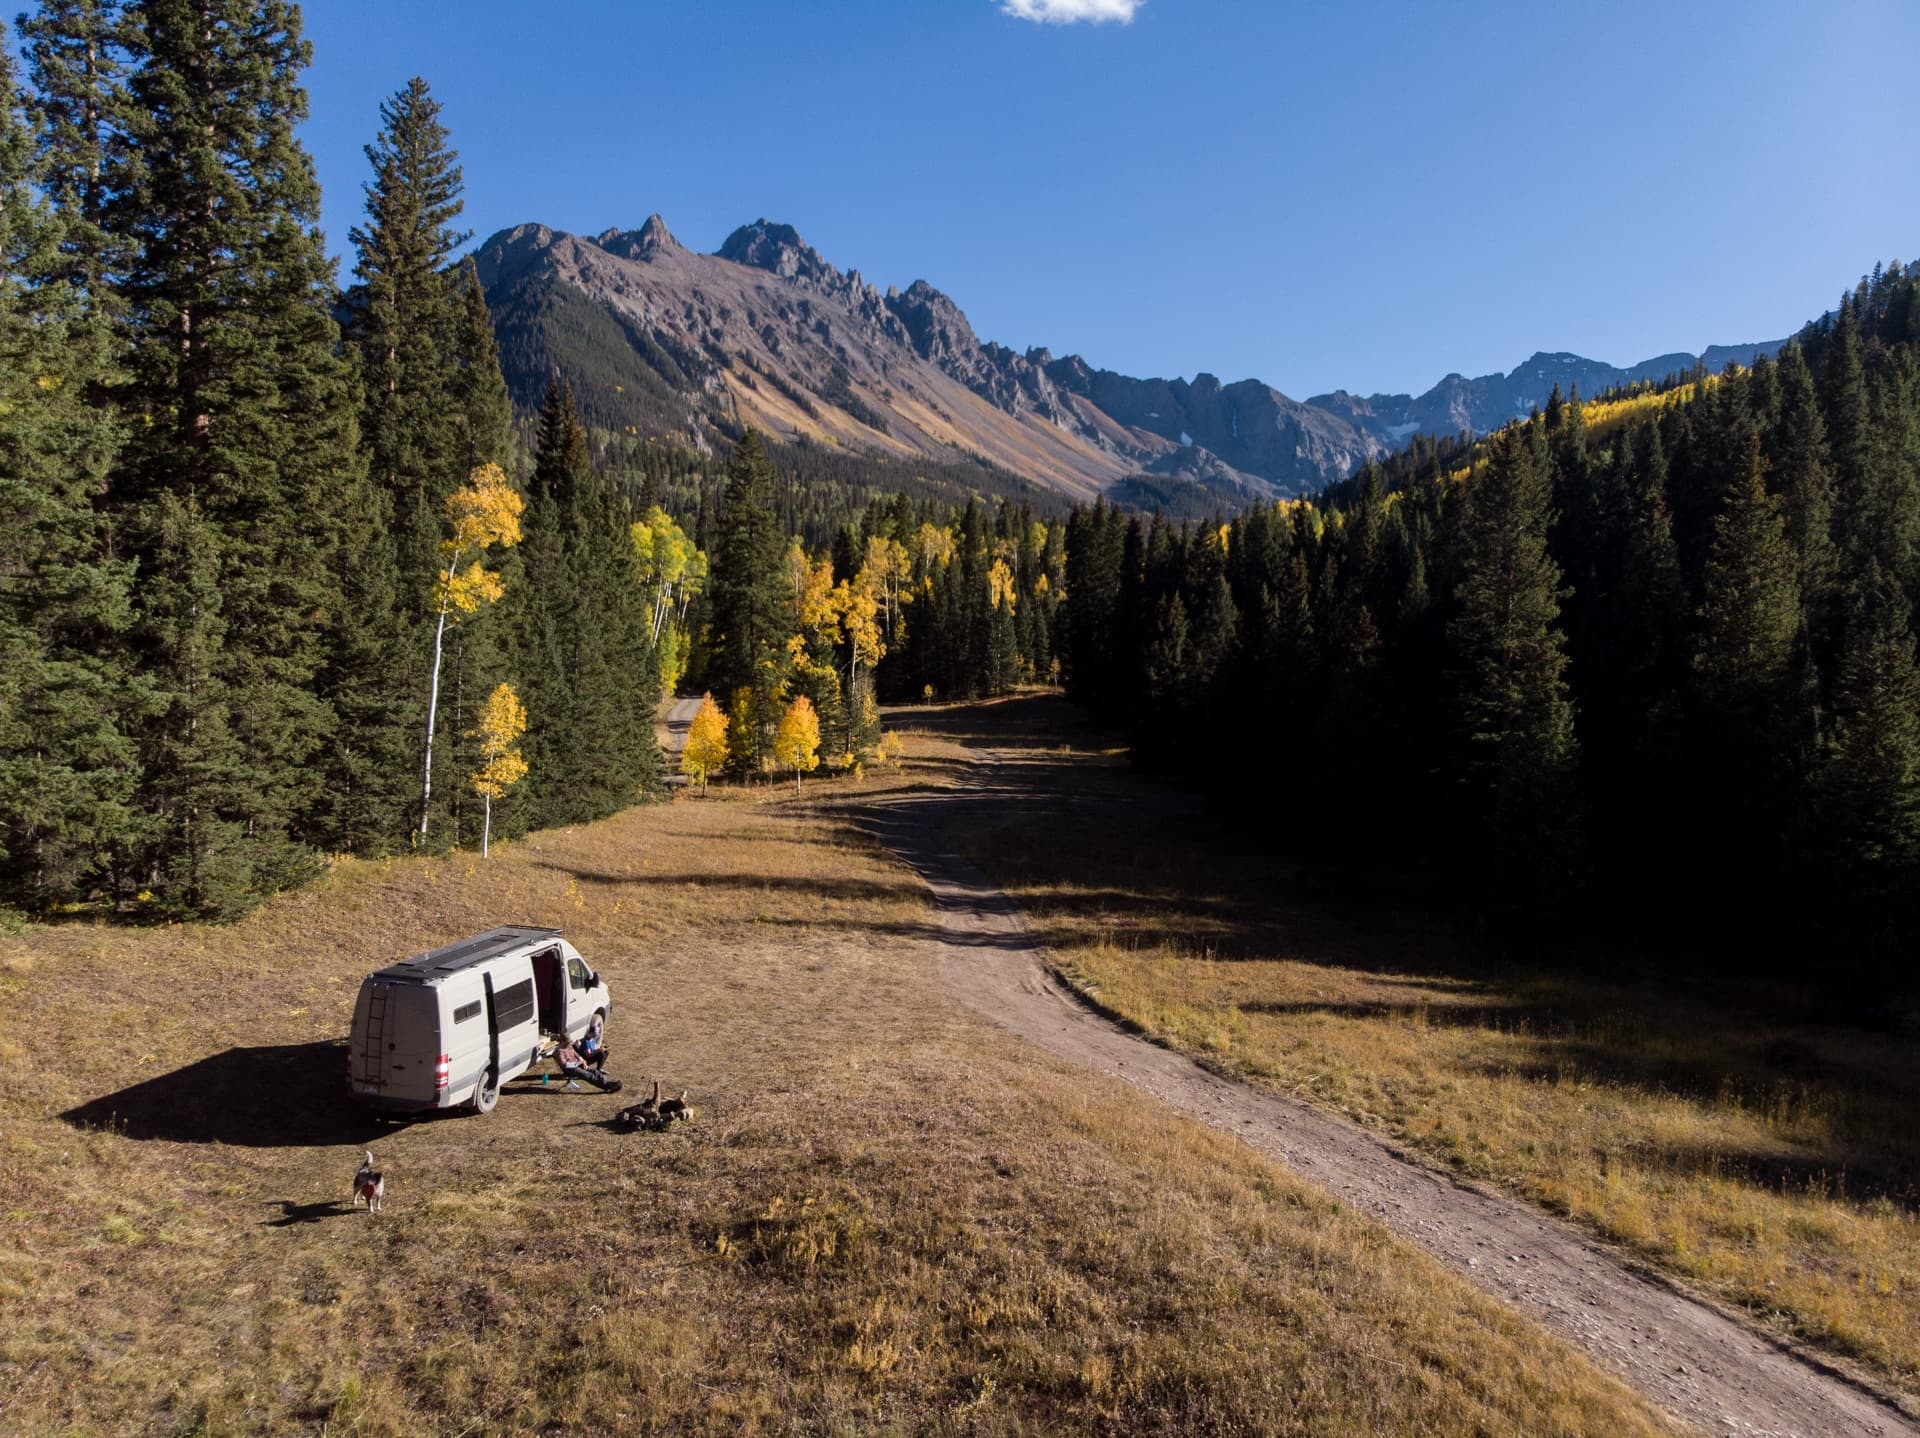 Learn where and how to find free campsites on your next trip with this list of the best websites, apps & maps for finding dispersed camping.